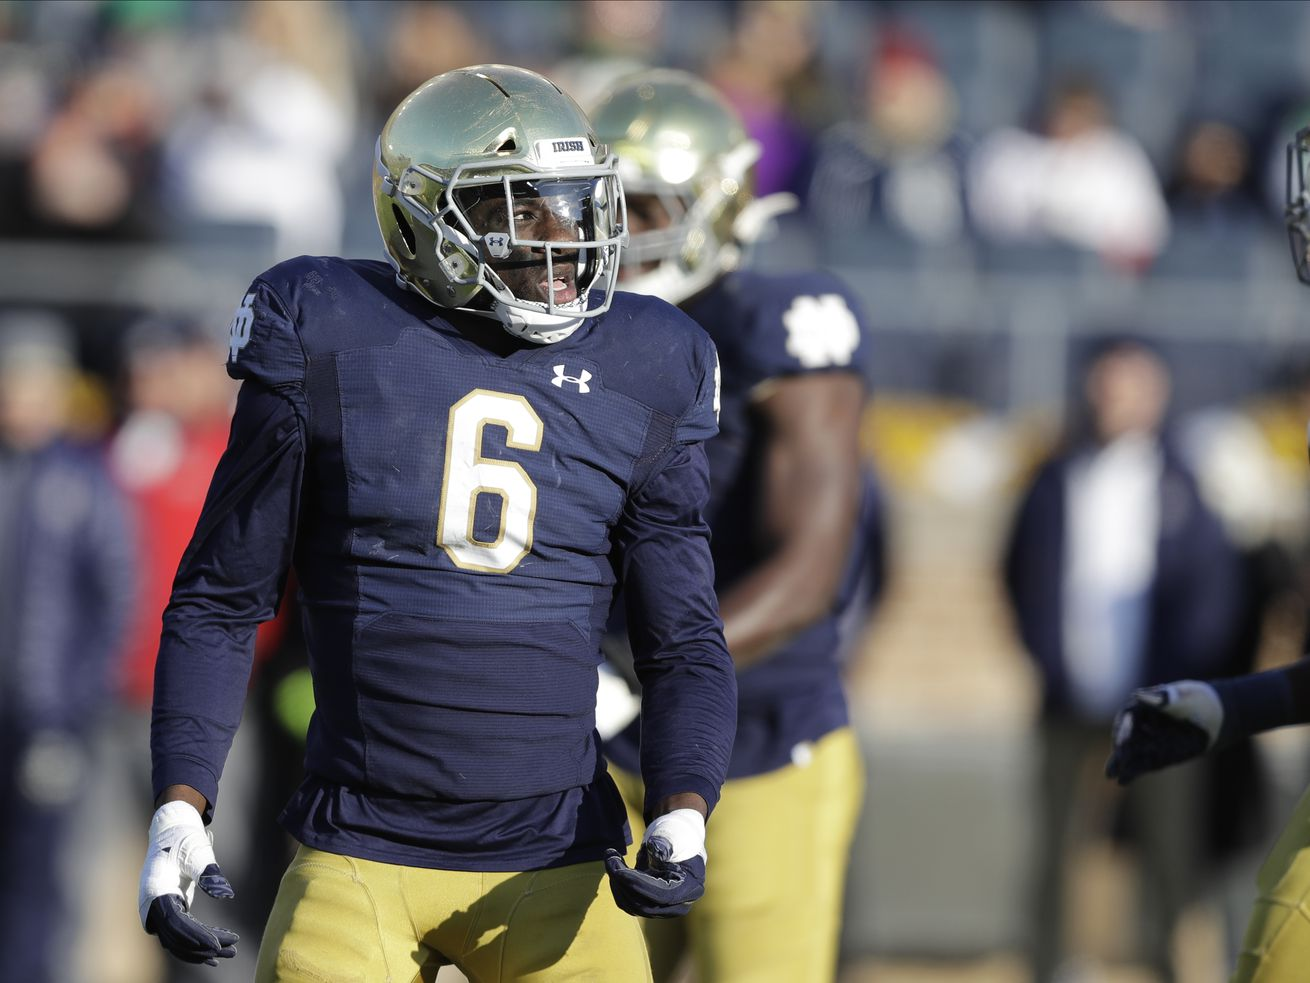 Notre Dame's 'Wu' already starting to wow